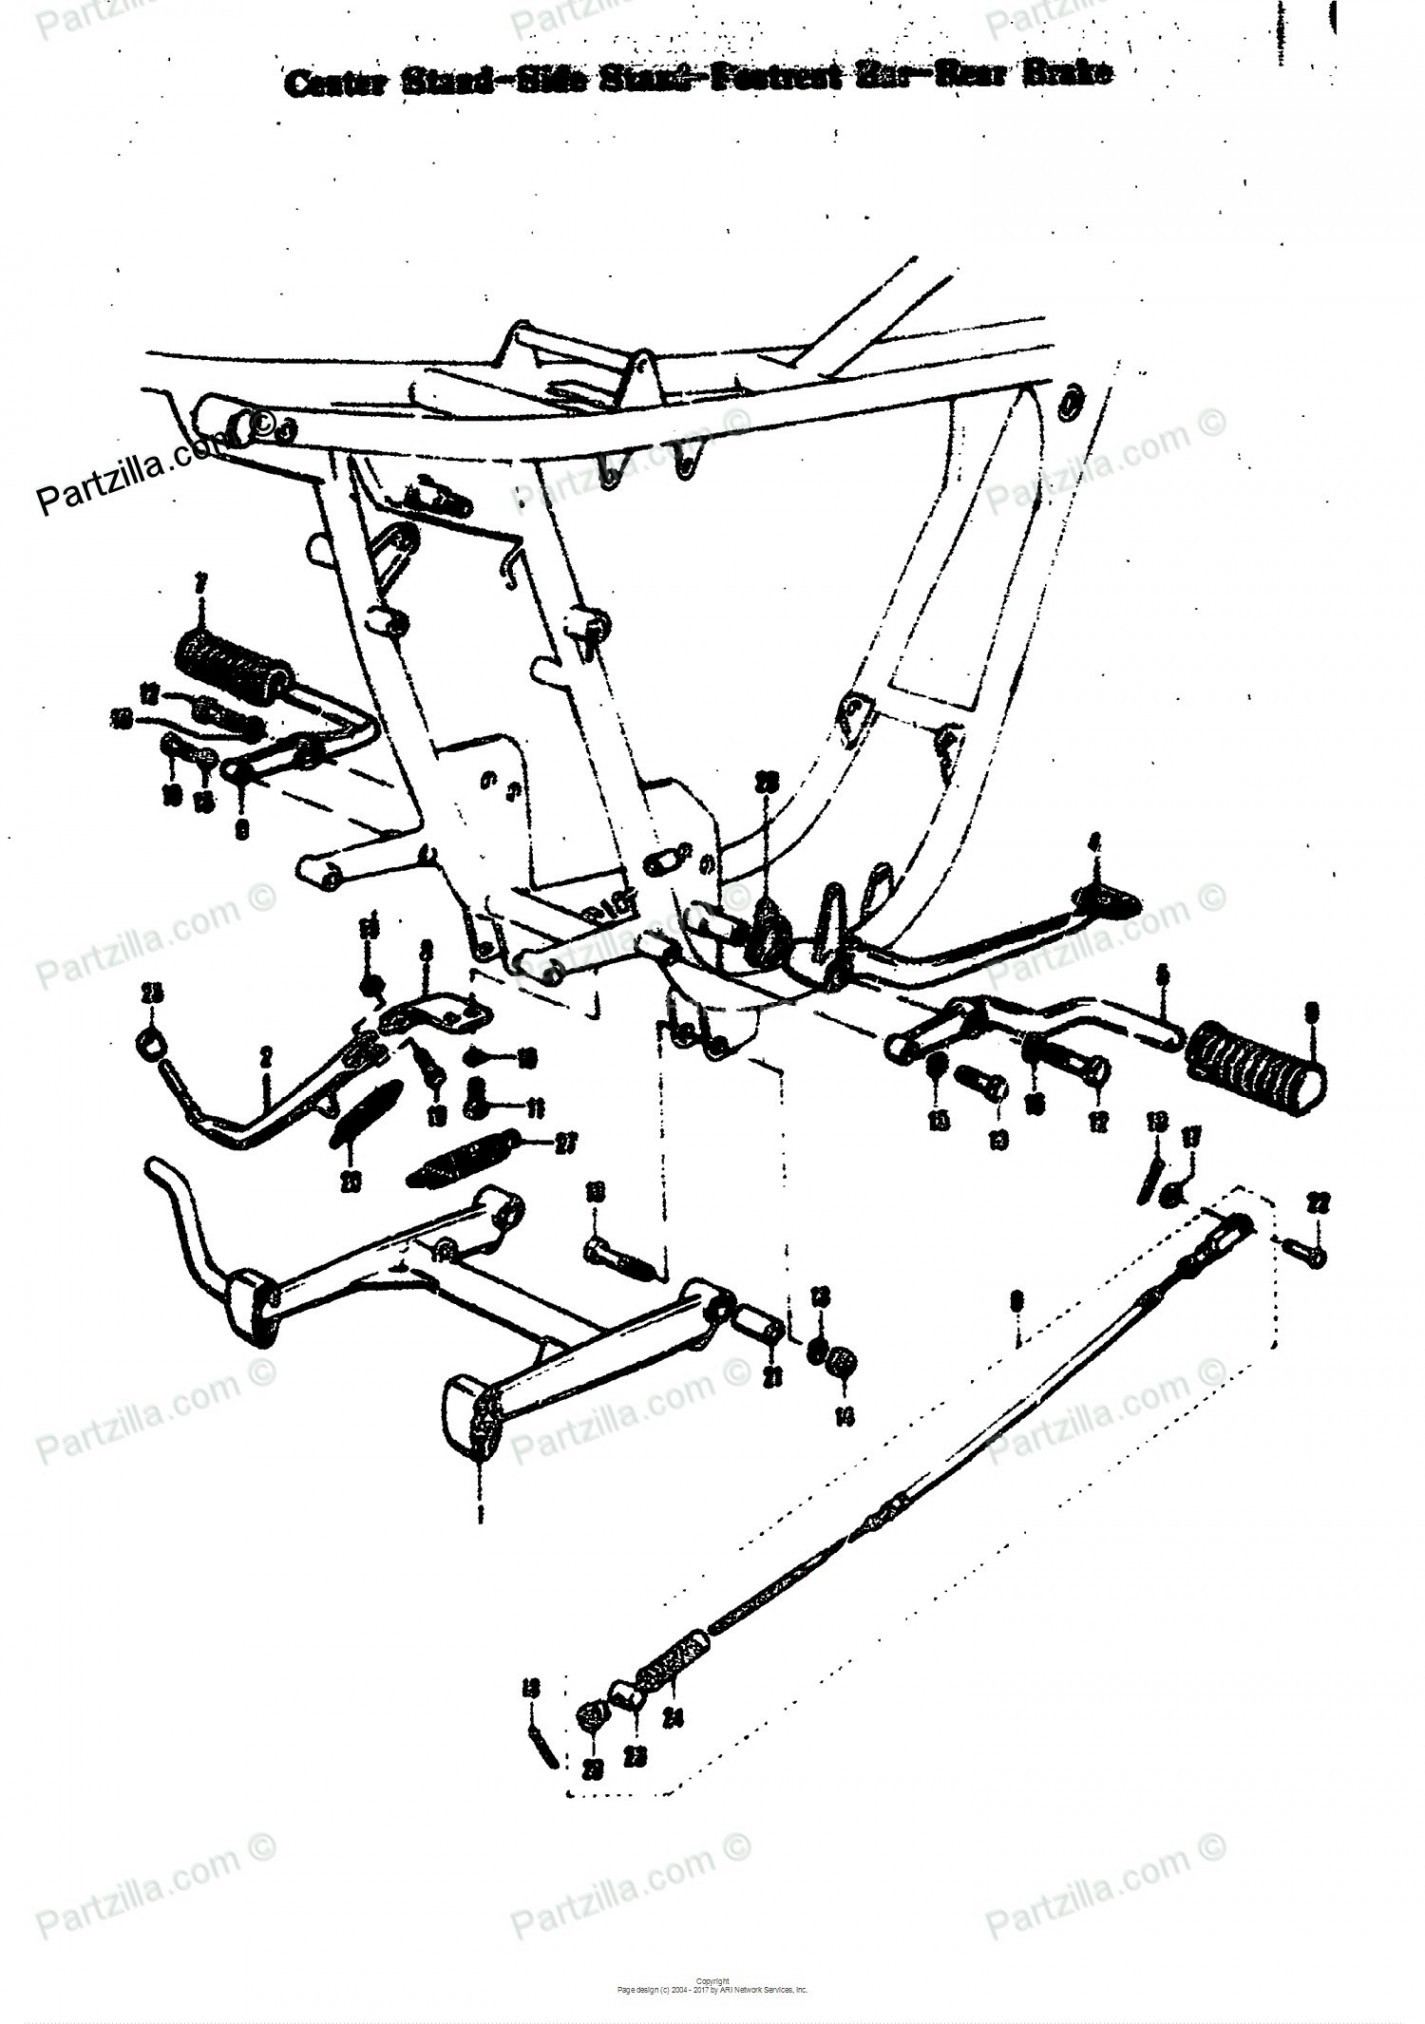 Suspension Parts Diagram Front Suspension Diagram – Vehicle Suspension Diagram Thinker Life Of Suspension Parts Diagram